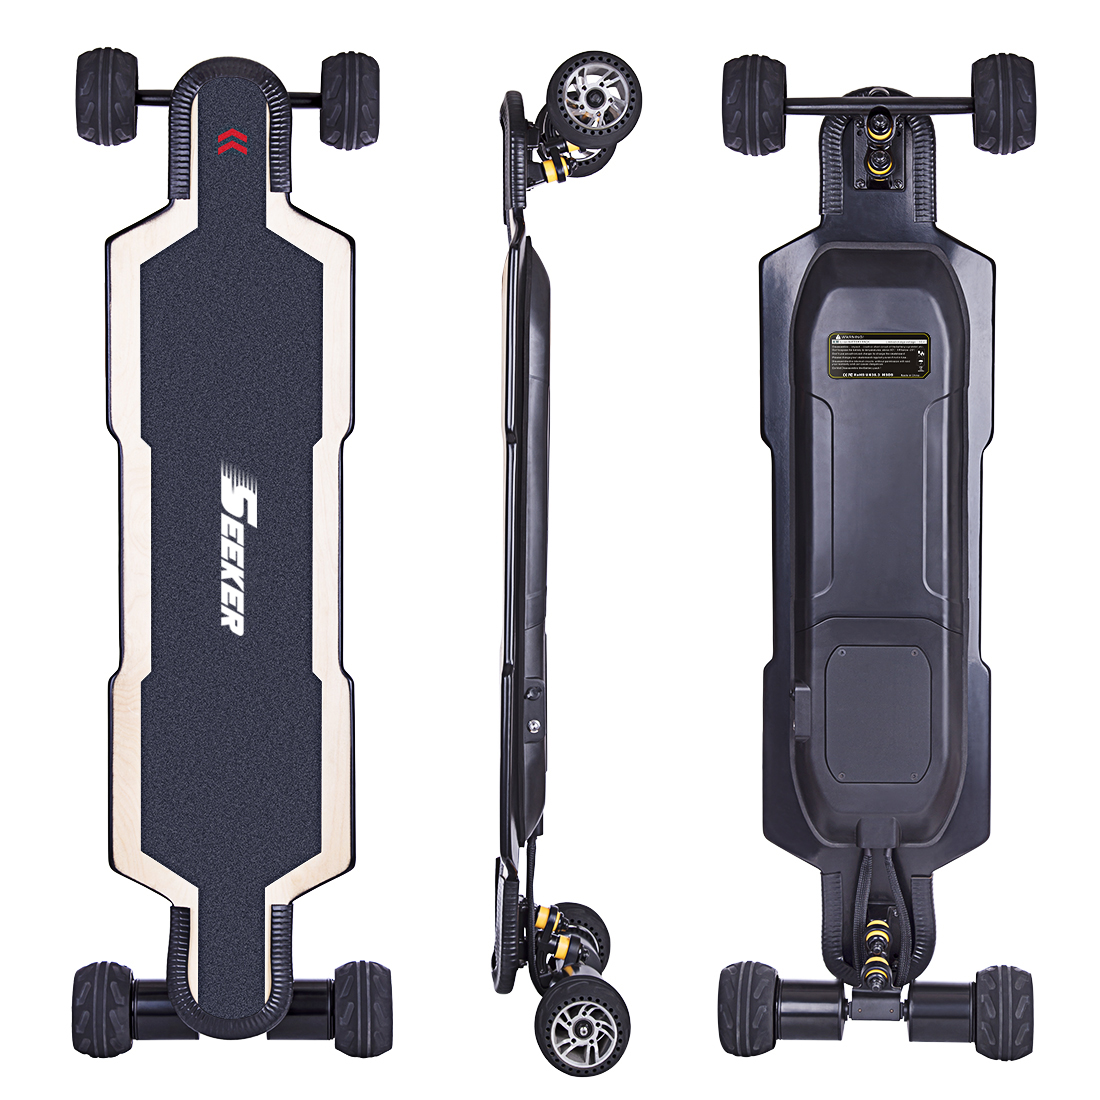 New Hot SEEKERS BRT-02 4-Wheel Electric Skateboard - AU Plug